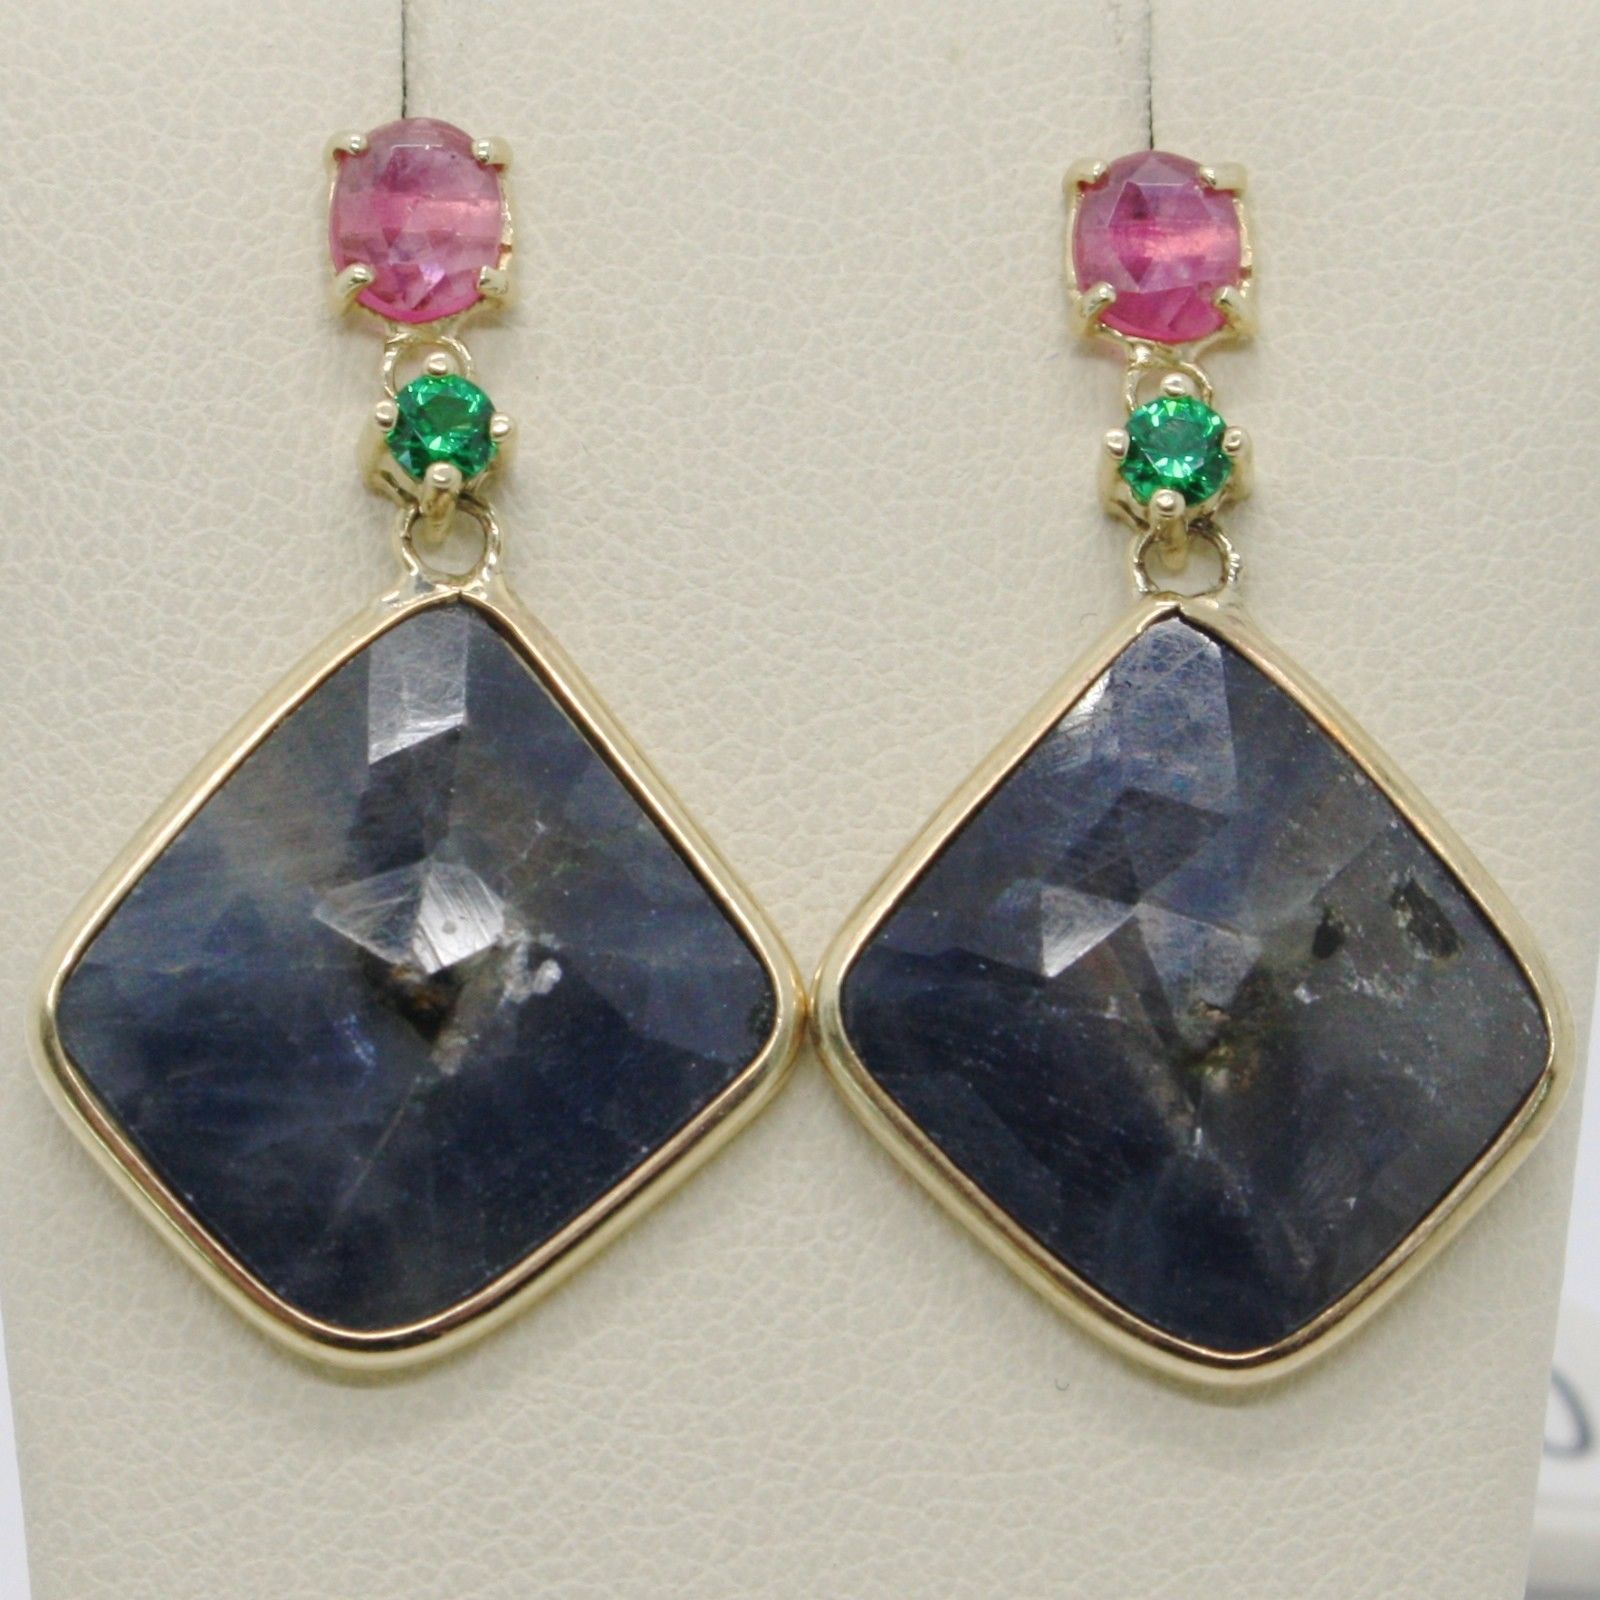 9K YELLOW GOLD PENDANT EARRINGS, DROP BLUE & OVAL PINK SAPPHIRE, GREEN EMERALD